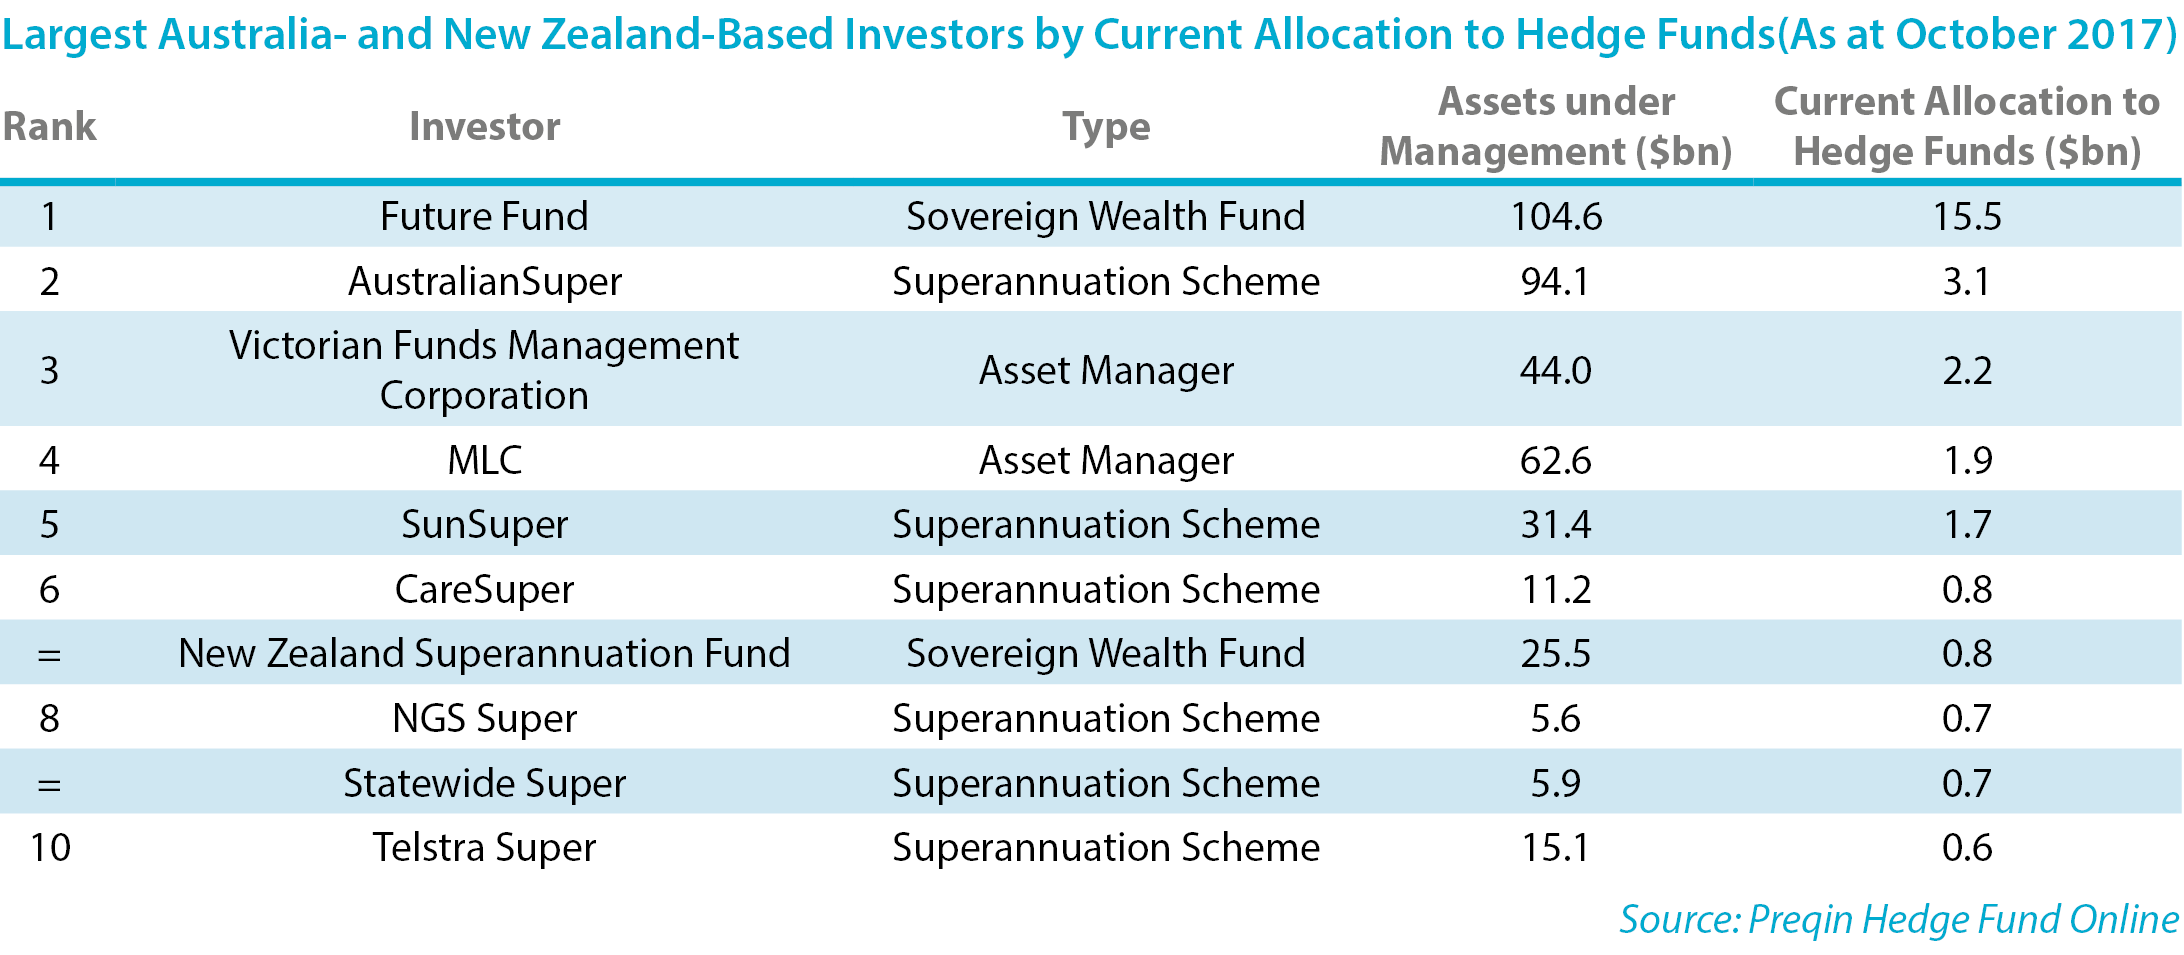 The Top 10 Australia- and New Zealand-Based Investors in Hedge Funds